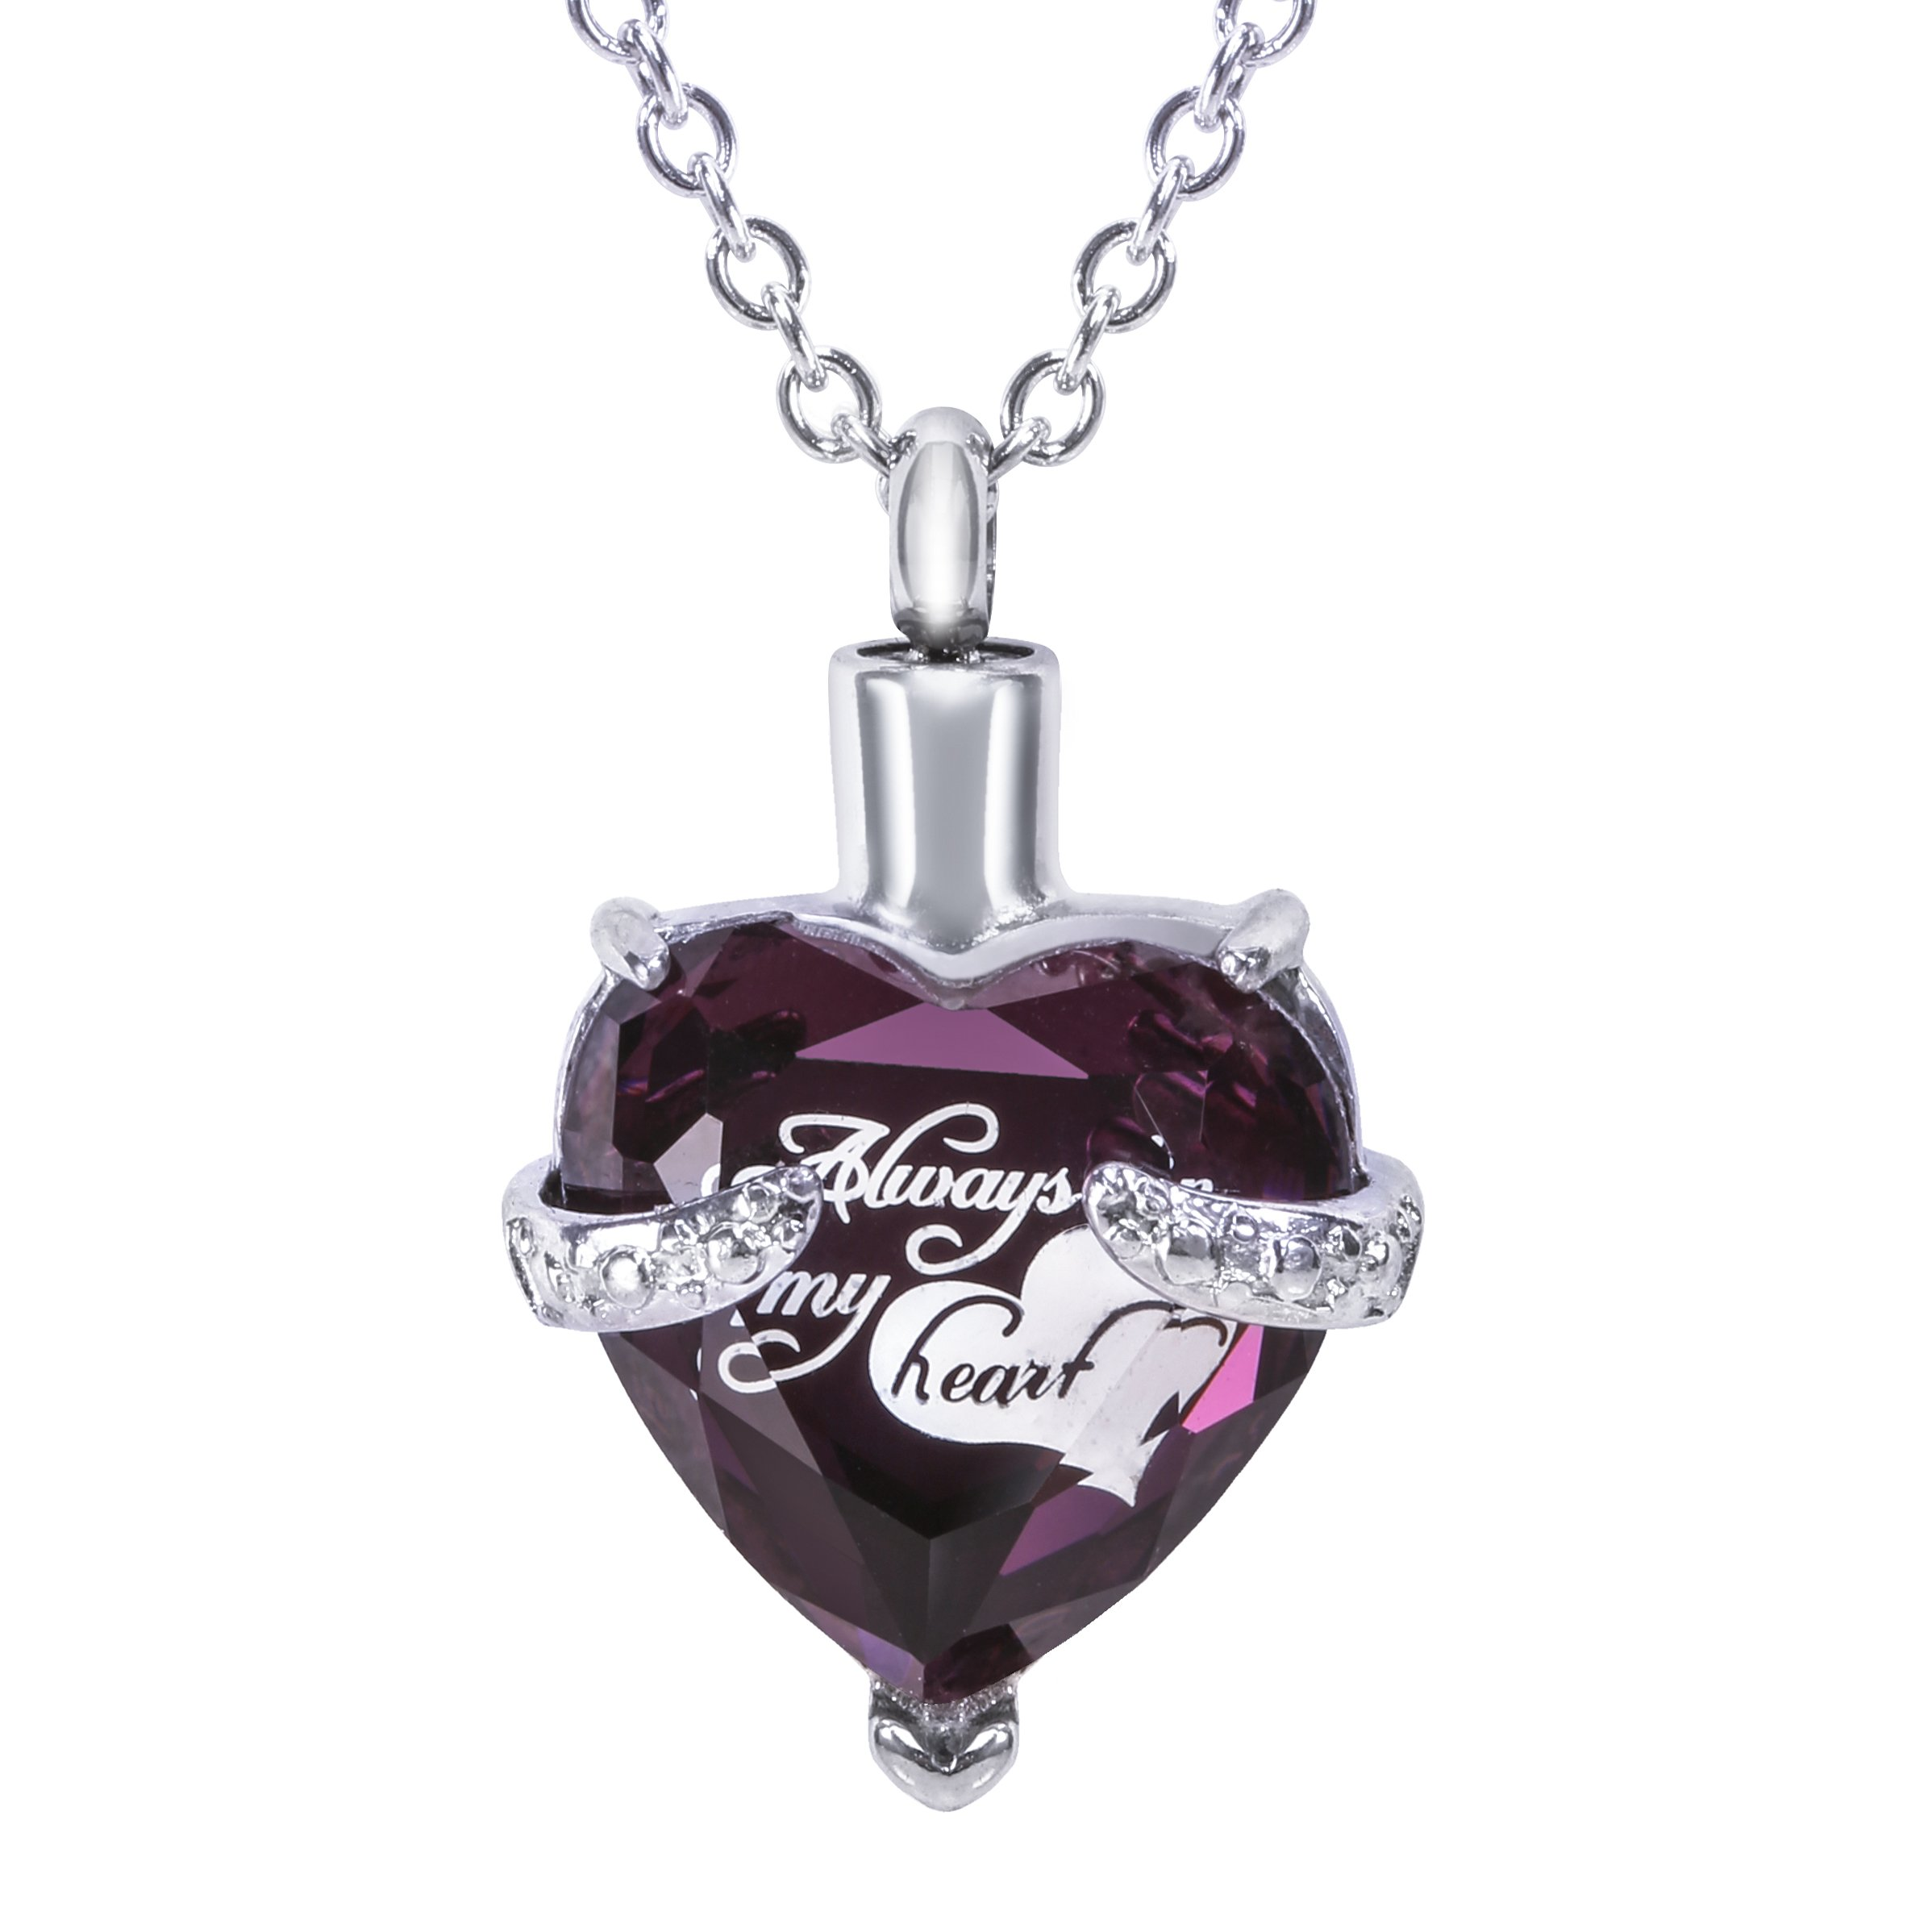 SmartChoice Keepsake Rhinestone Necklace Heart Pendant for Cremation Ashes with Beautiful Presentation Gift Box, Elegant Memorial Jewelry with Stainless Chain and Accessories, Purple